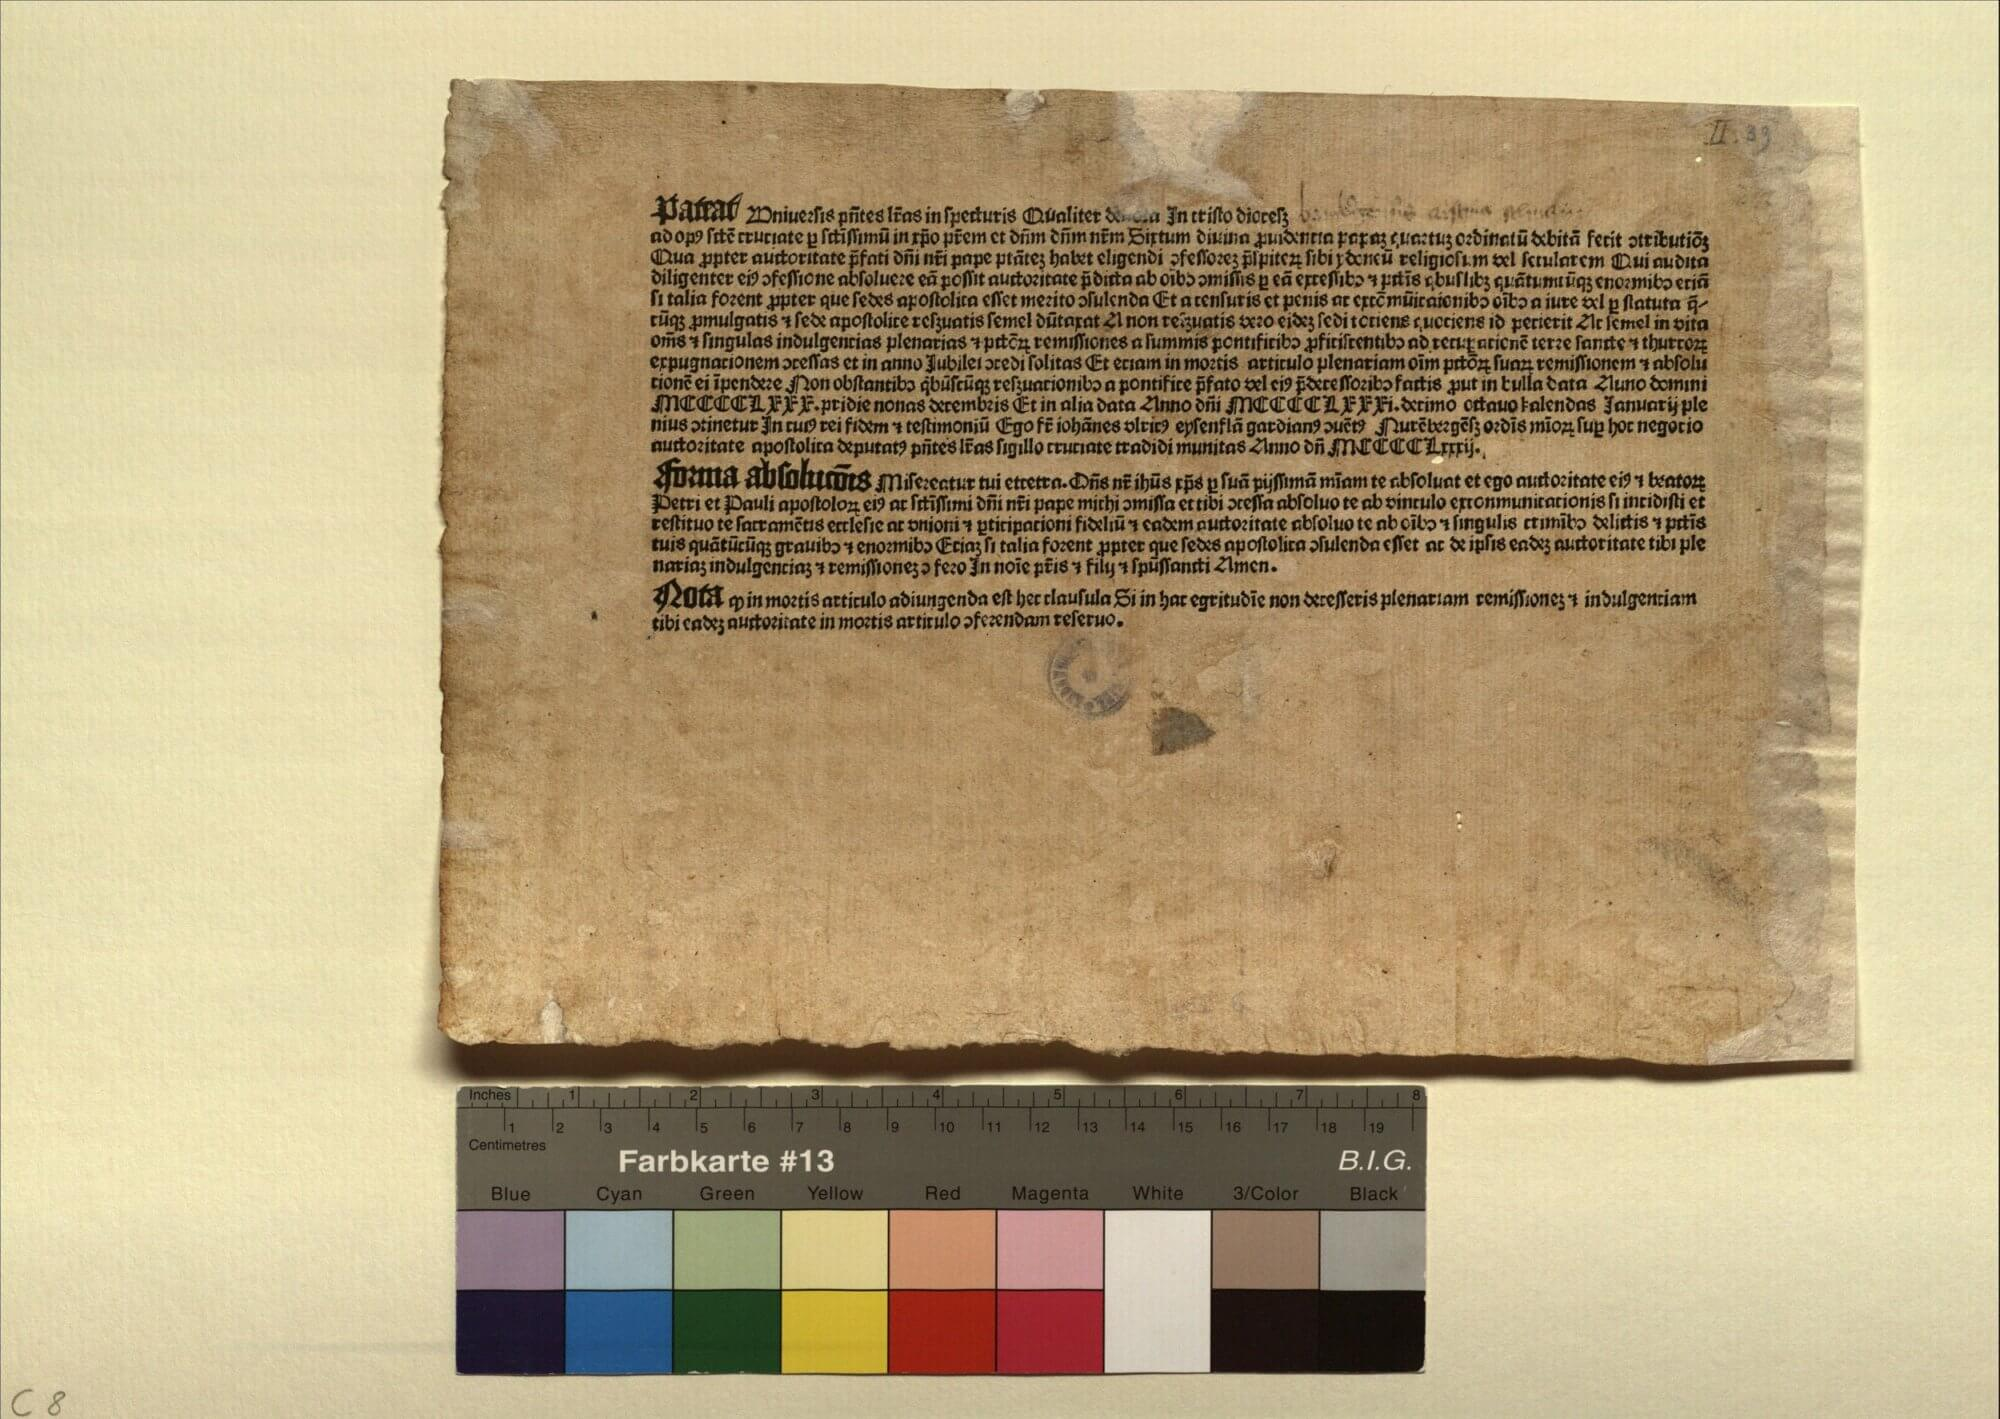 """This form is an indulgence granted for """"promoting the war against the Turks,"""" in a variant designed specifically for women. The handwritten portion in the upper right corner fills in the name of the recipient, Cristina Schuczin, and her diocese, Bamberg. Indulgence forms like this one, combining print and manuscript elements, were some of the first widespread uses of printing in the Middle Ages."""